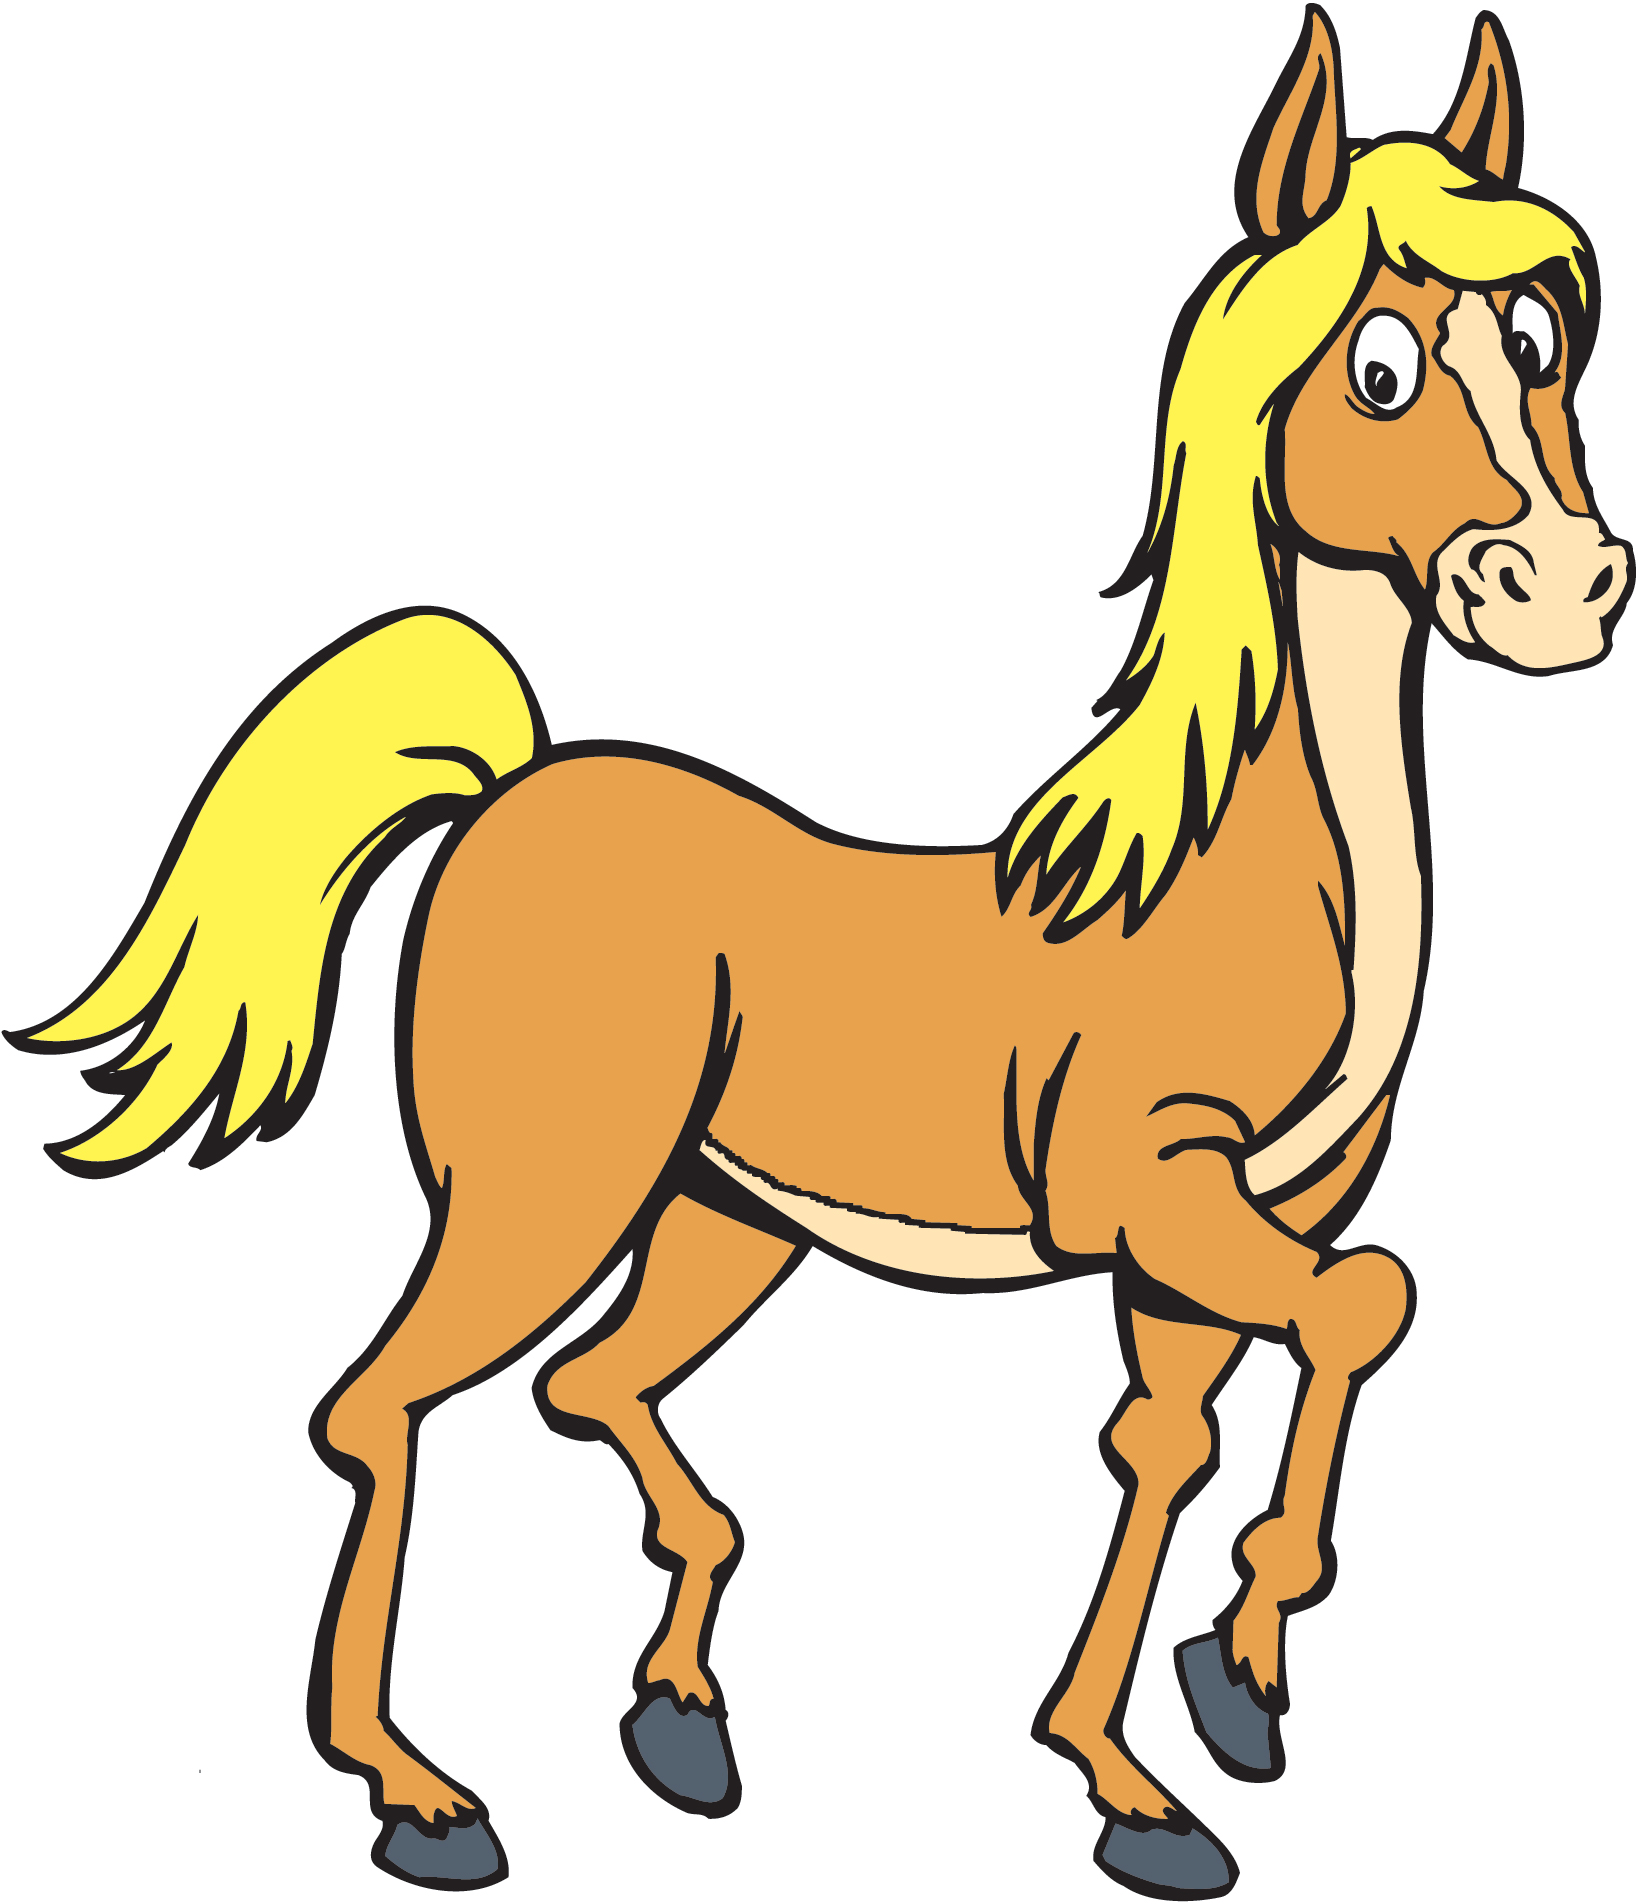 Horse related clipart